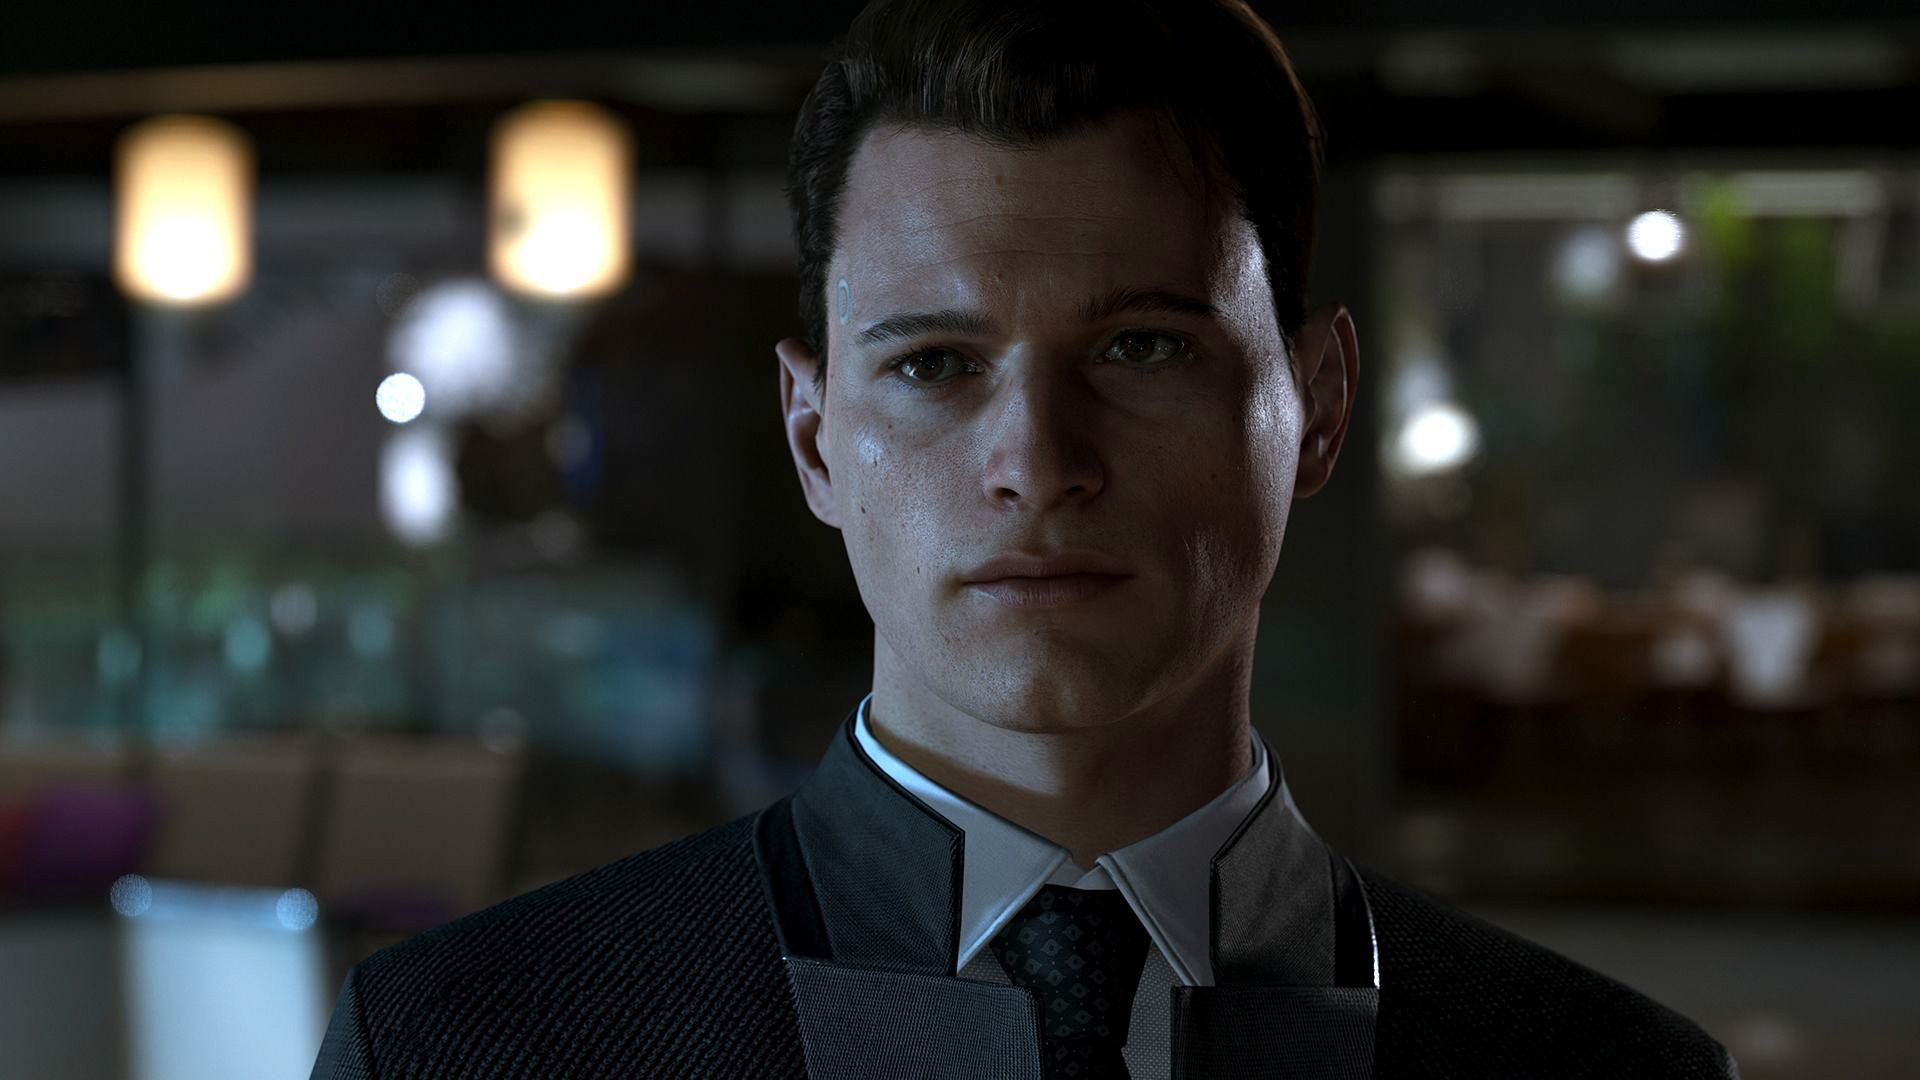 Detroit Become Human Wallpaper Pack